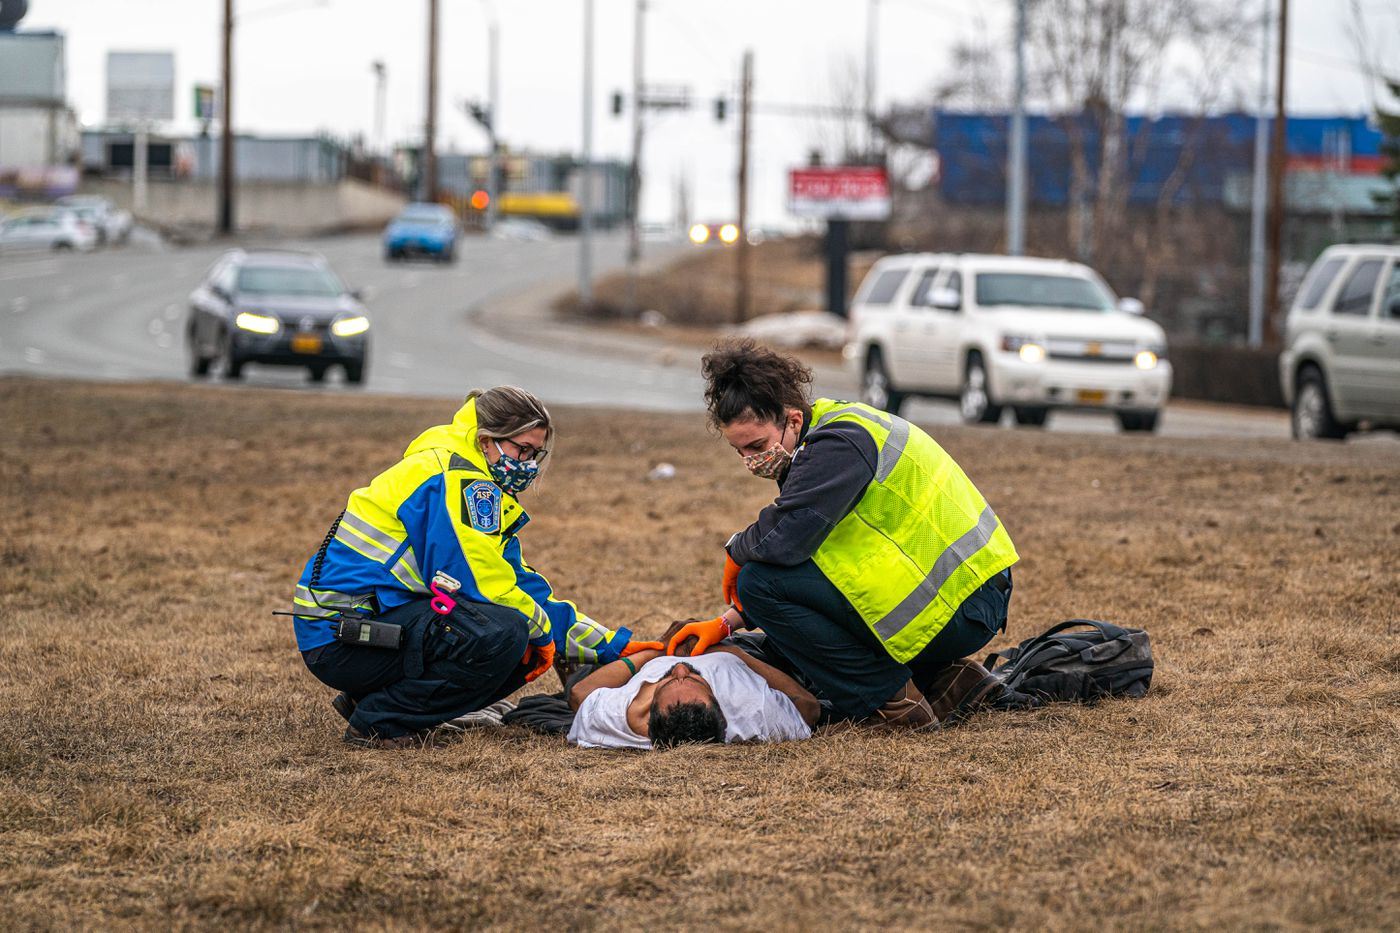 APRIL 17. Anchorage Safety Patrol responders tend to an incapacitated man outside the Sullivan Arena. The arena is serving as a emergency homeless shelter during the coronavirus pandemic. (Loren Holmes / ADN)